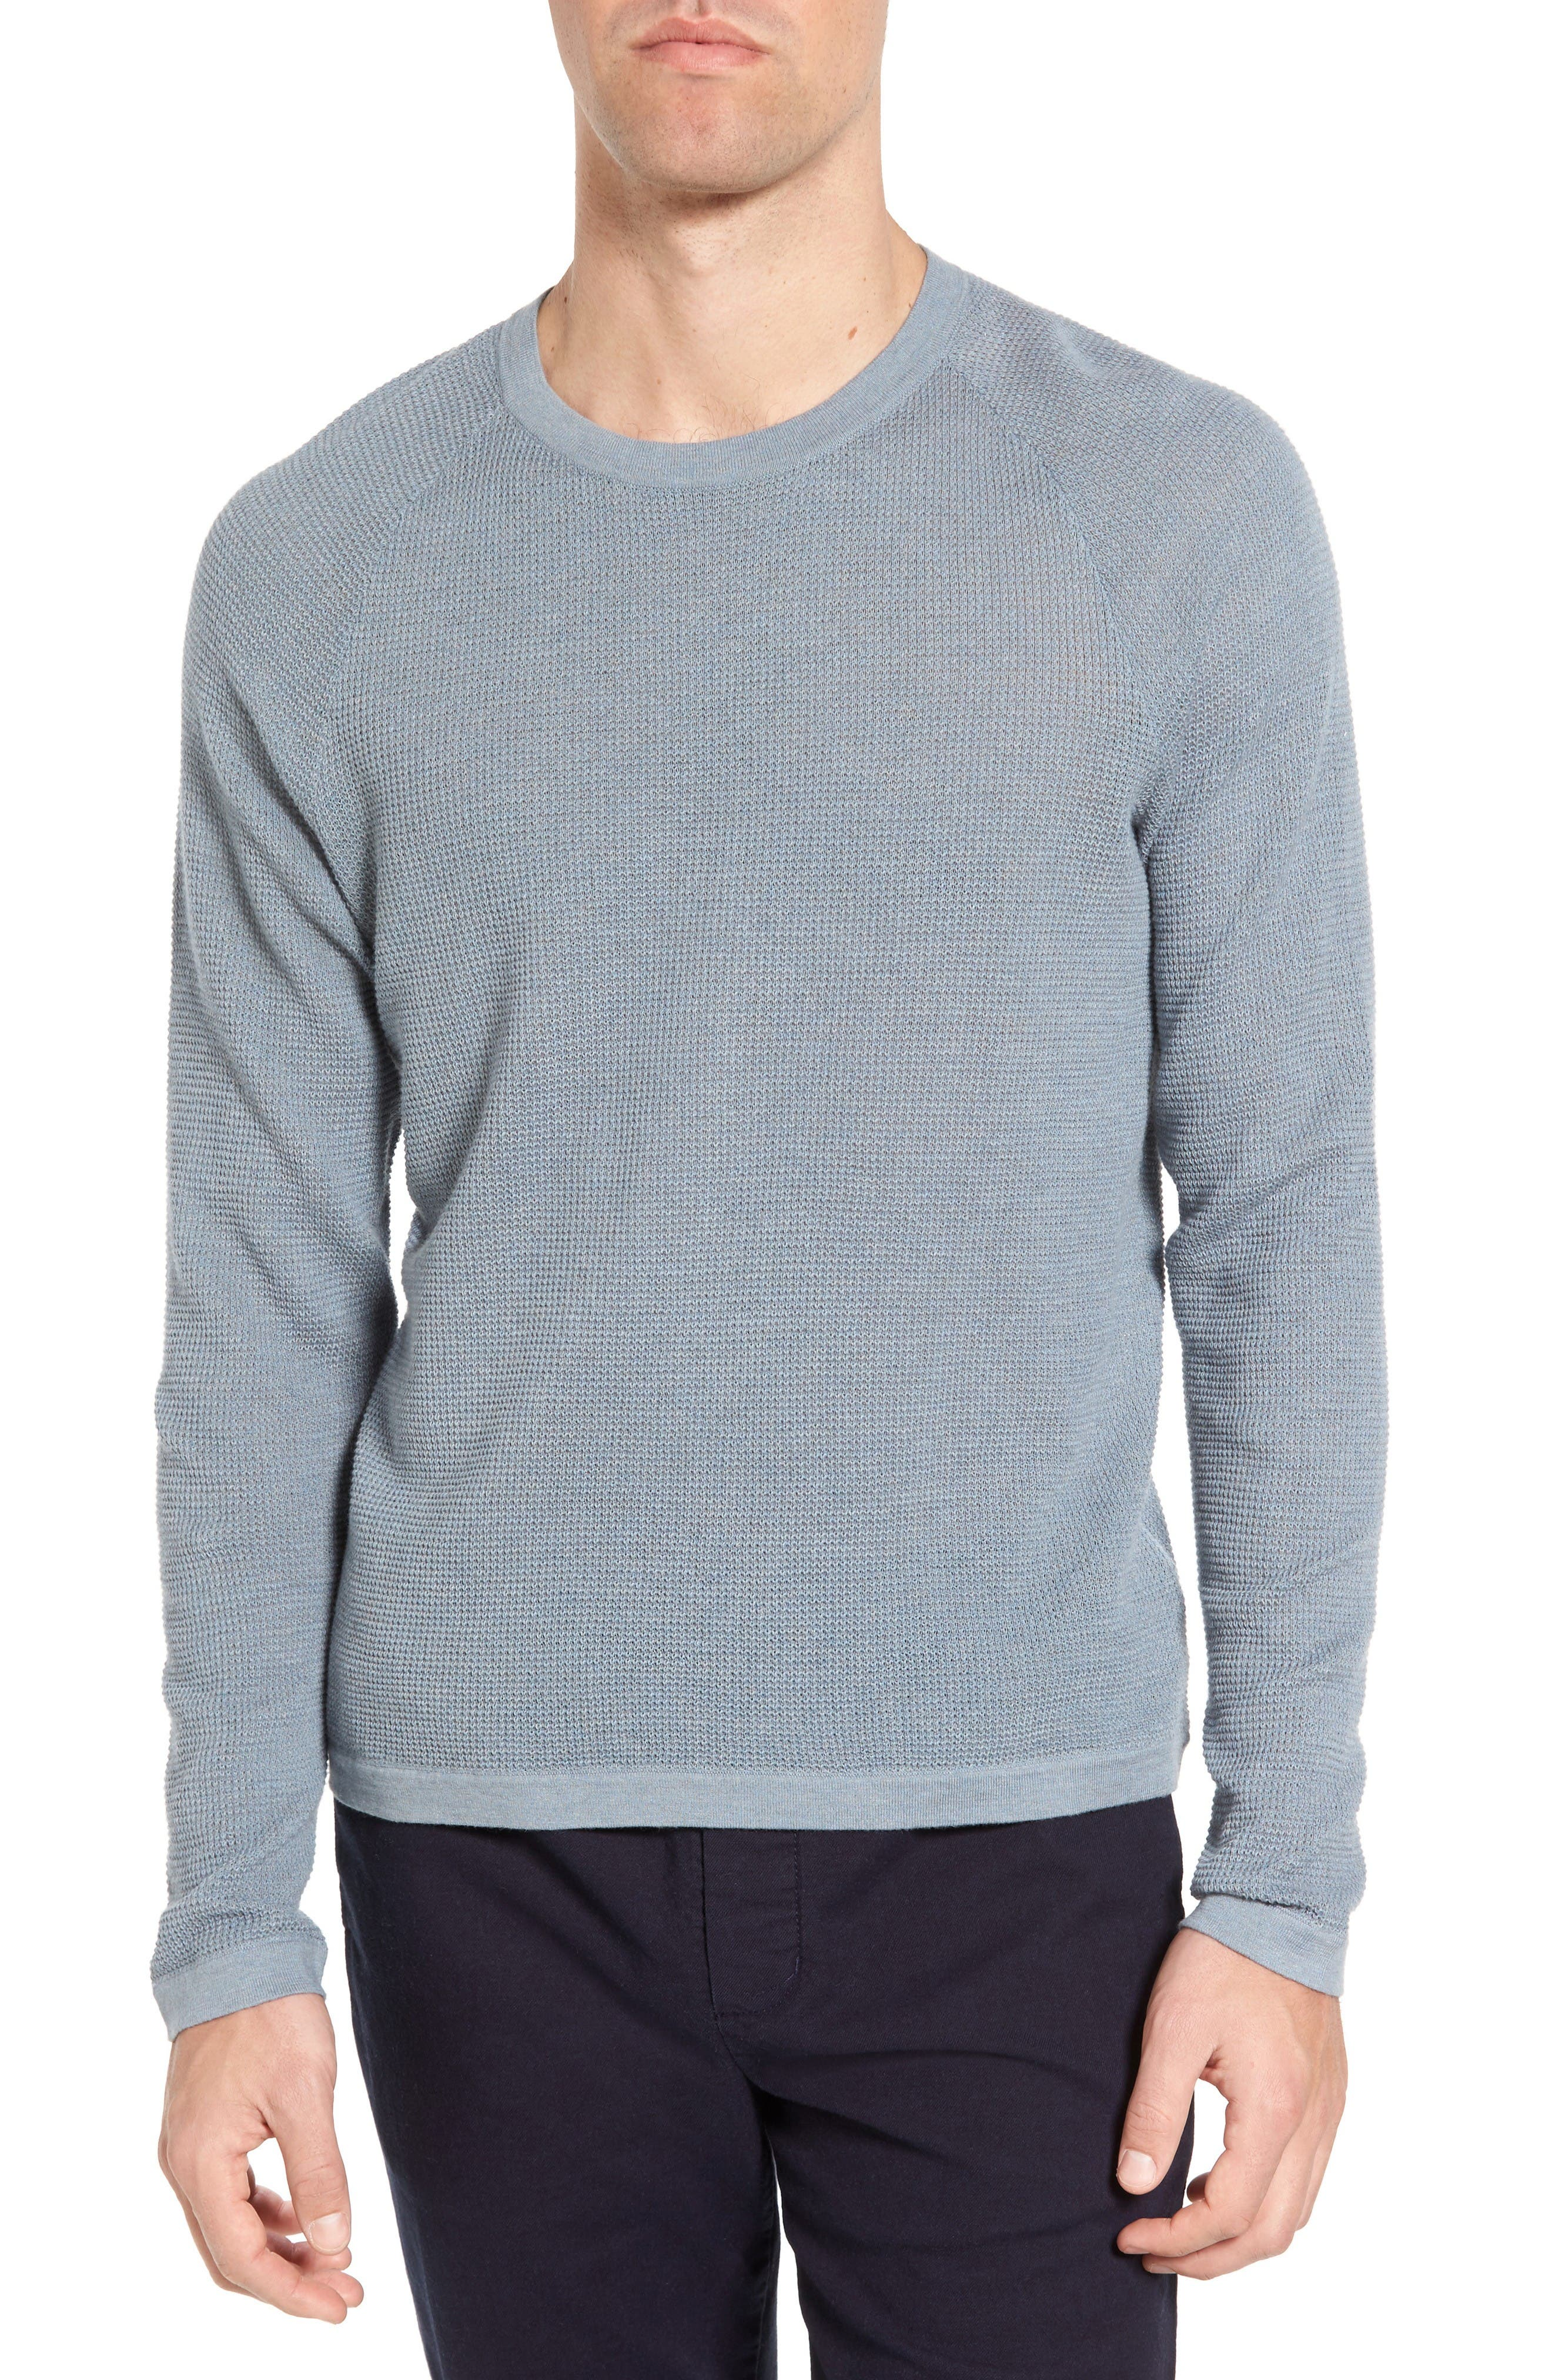 JAMES PERSE Thermal Top